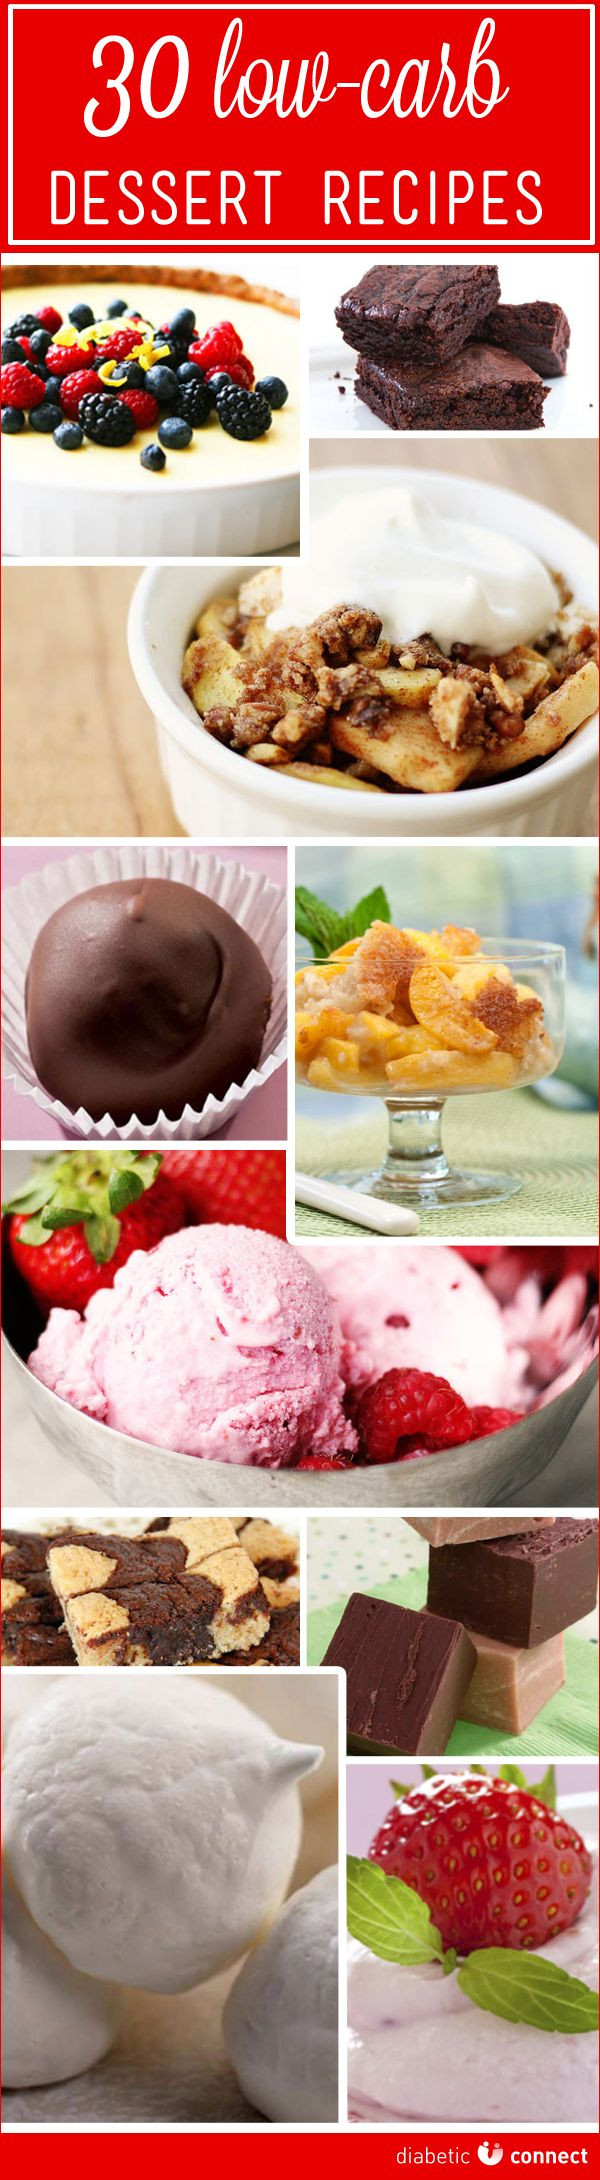 Pre Diabetic Desserts  61 best Diabetic & Kidney info recipes for Hubby images on